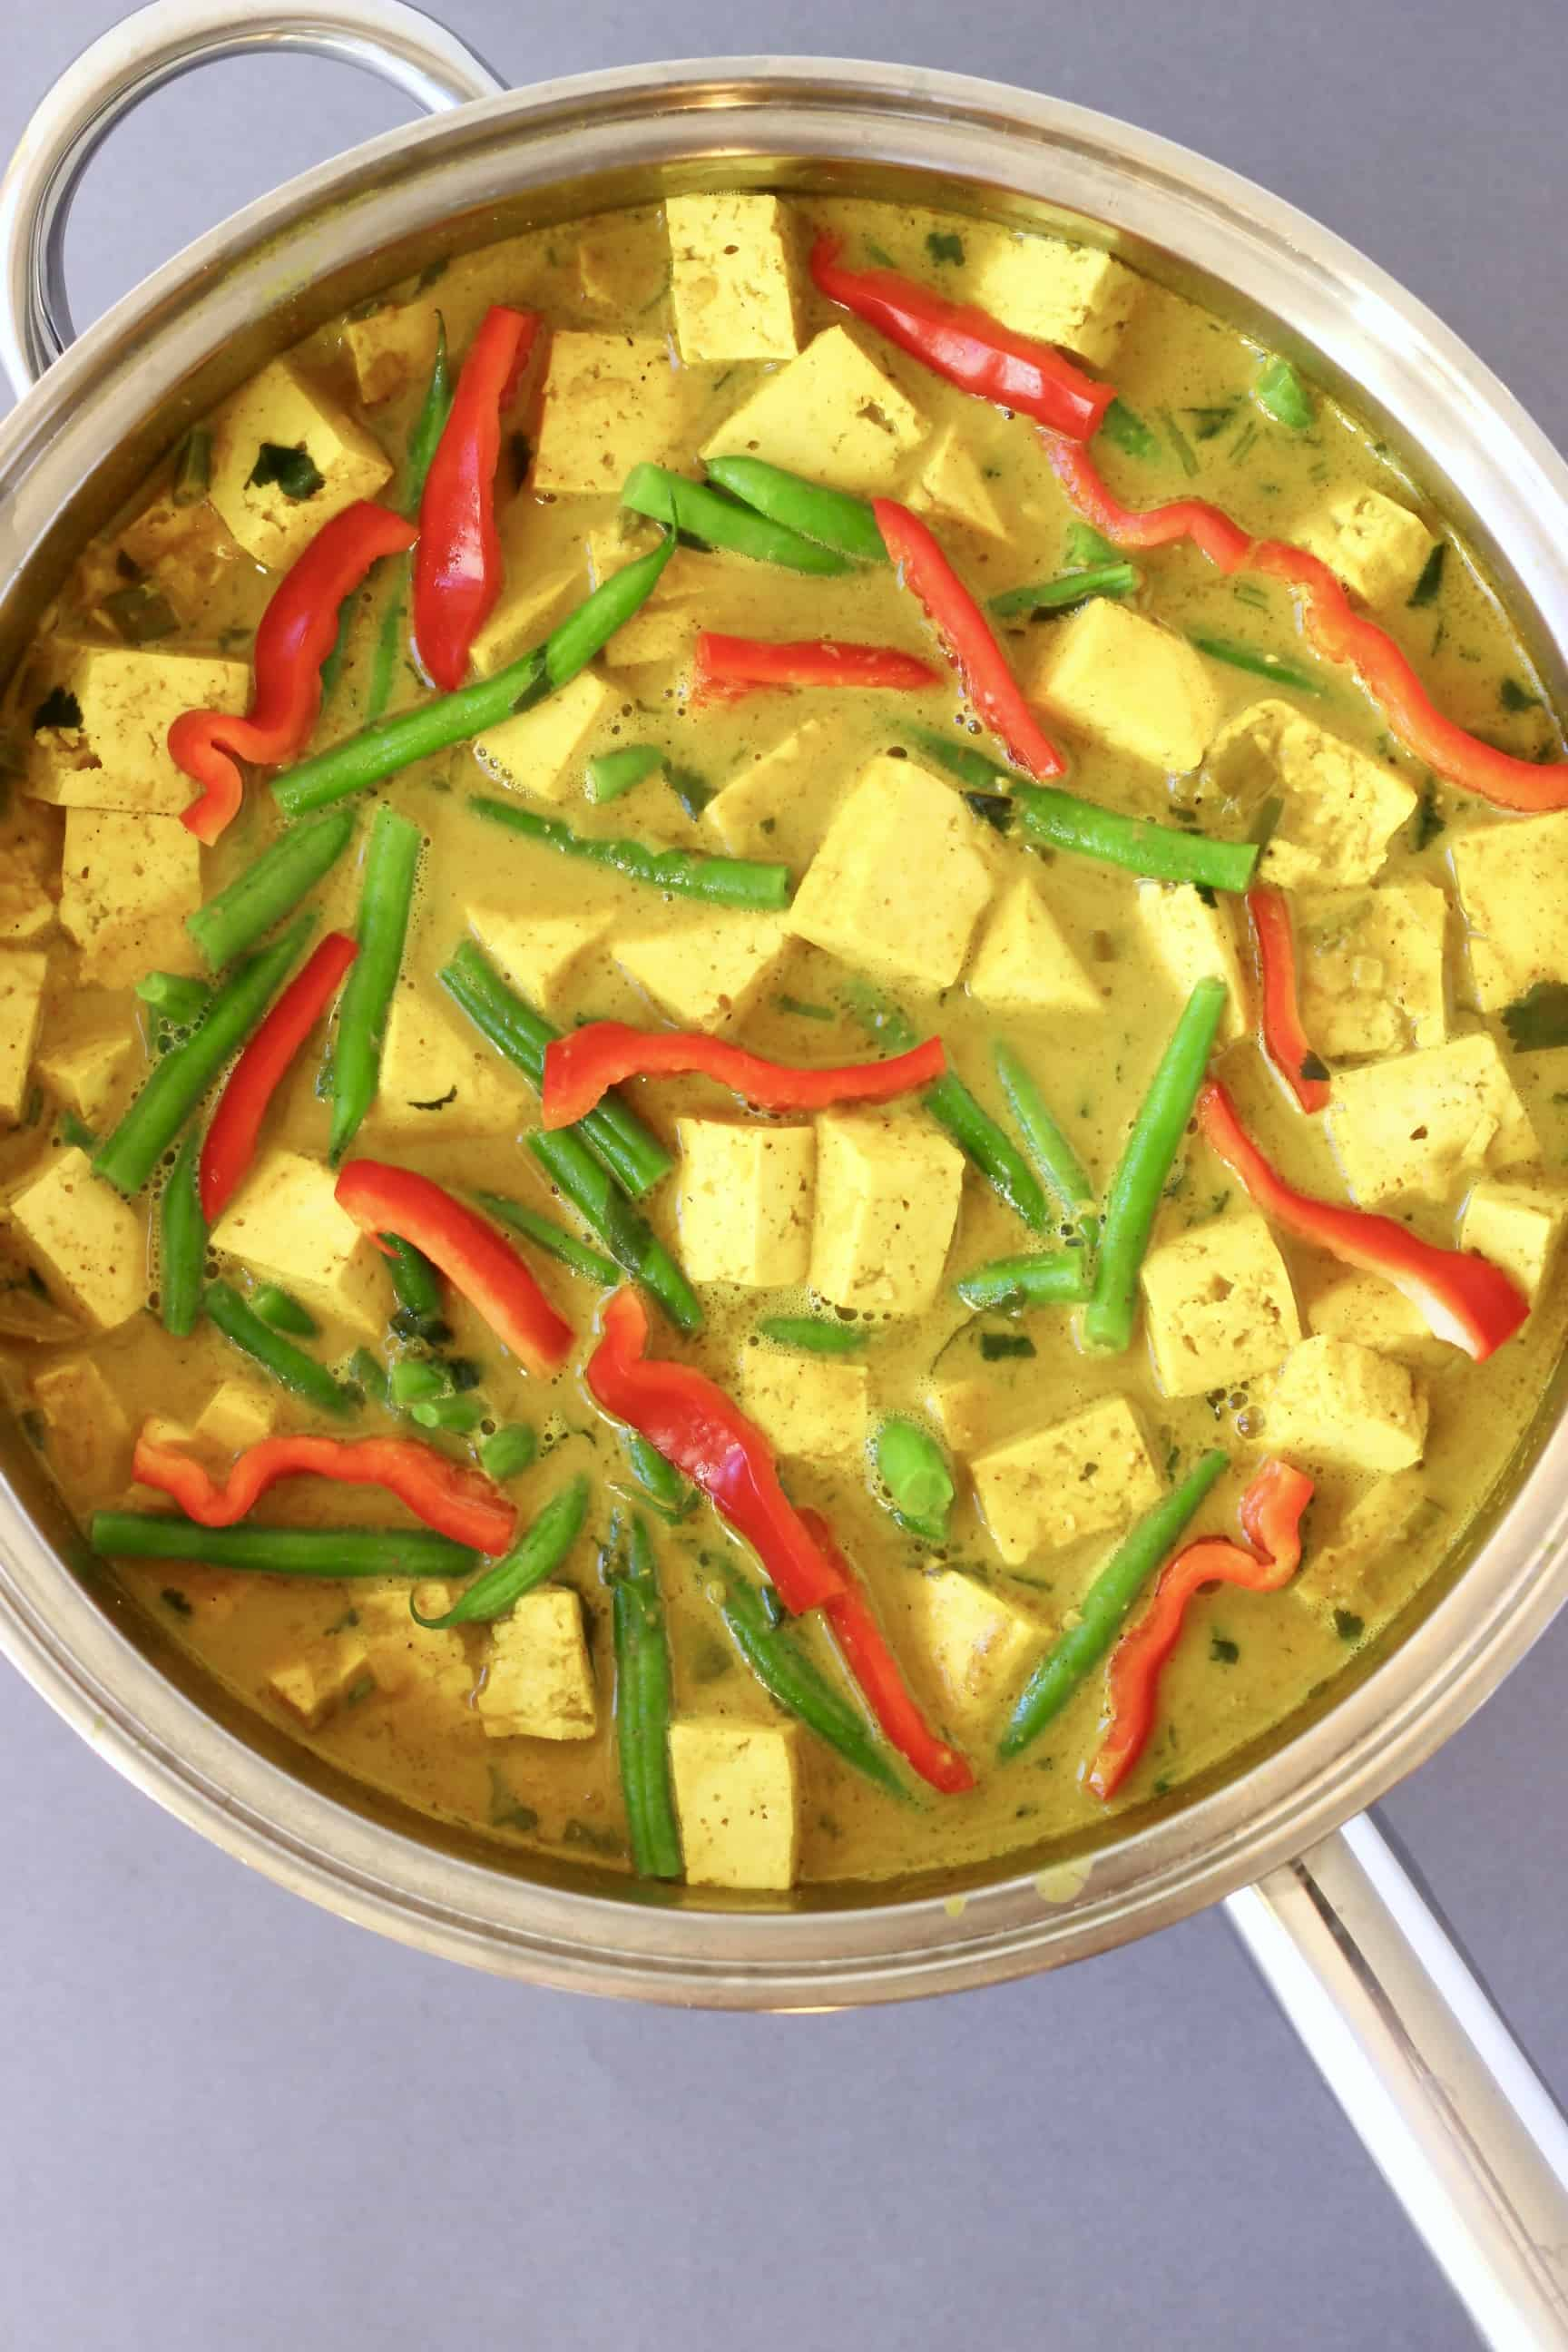 Peanut tofu satay curry with tofu, green beans and red pepper in a yellow curry sauce in a pan